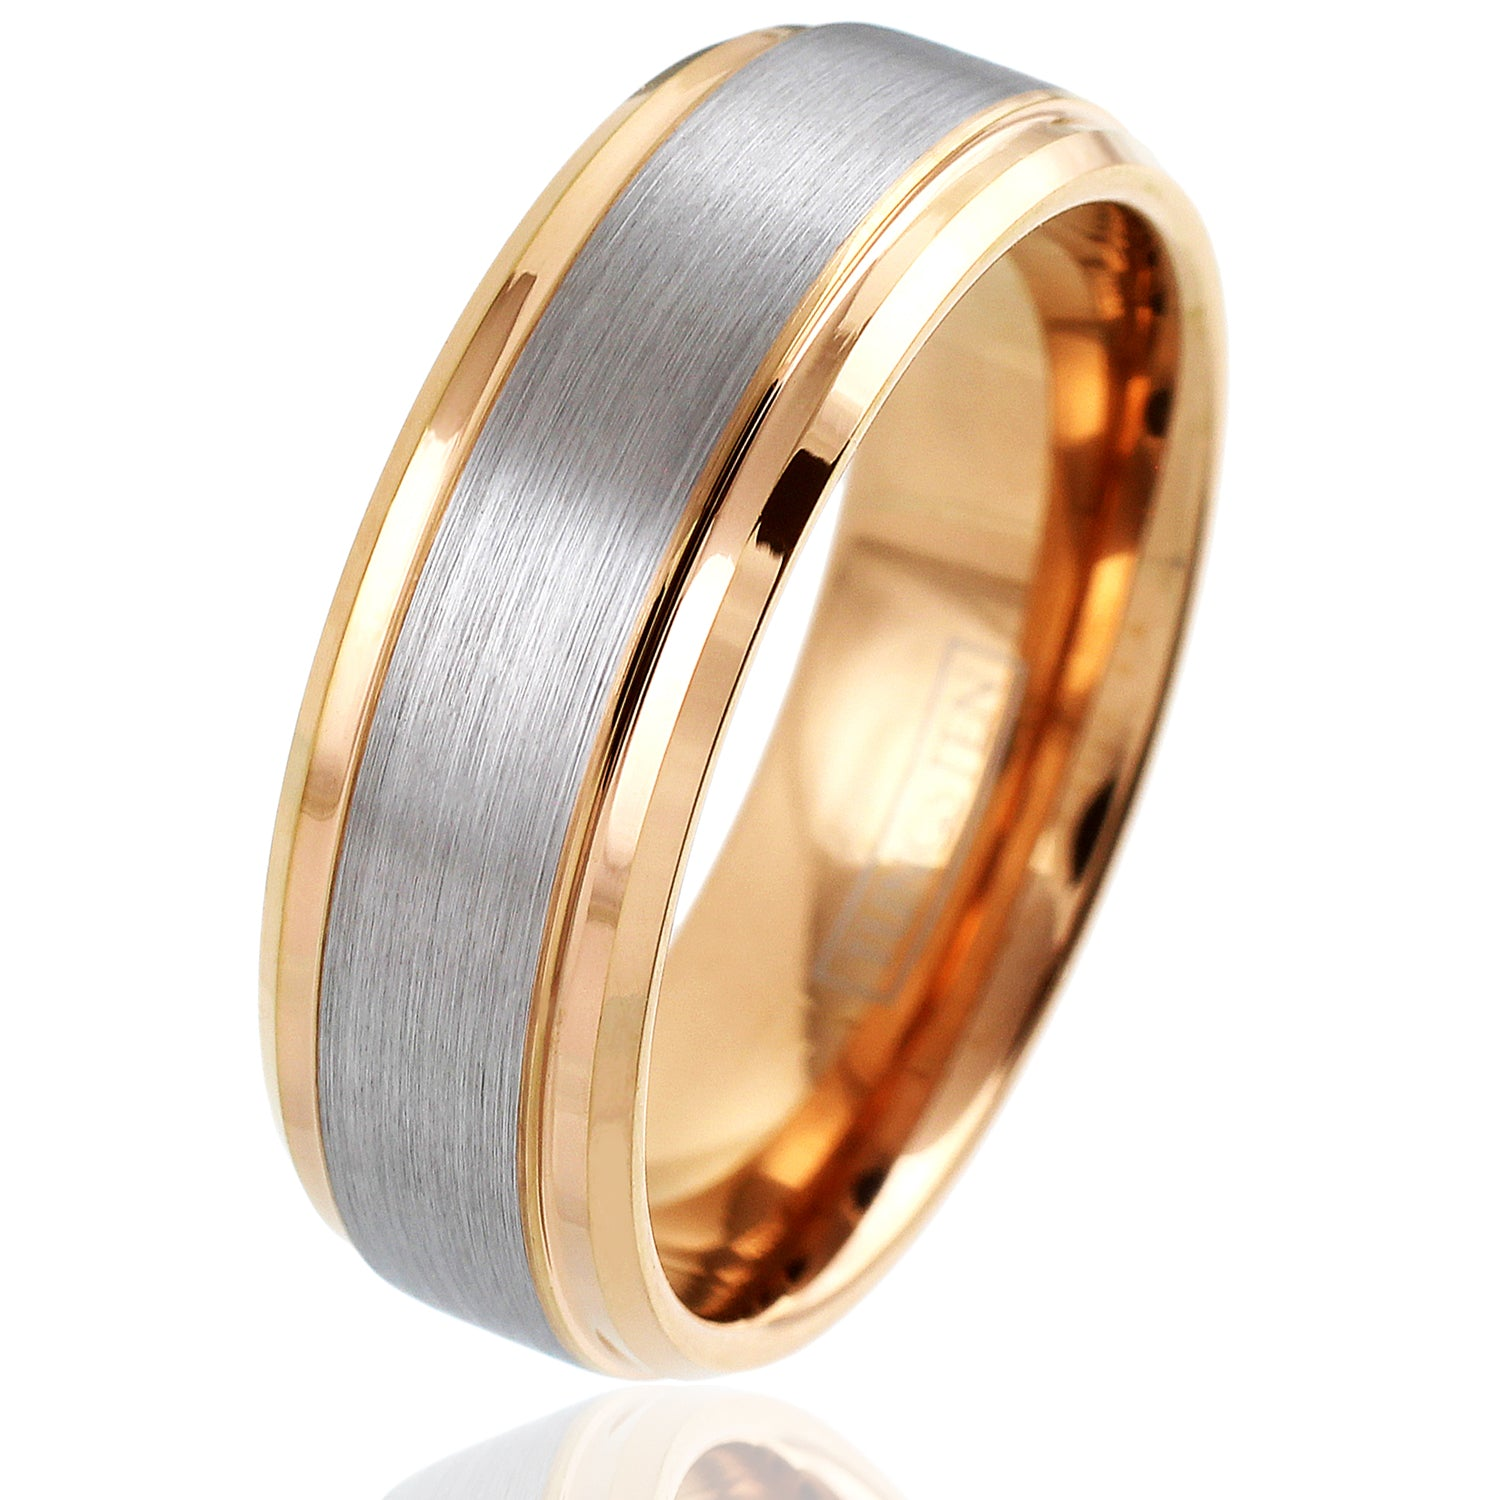 It is just an image of Gorgeous Rose Gold Tungsten Ring with Satin Finish Silver Outer Band & Polished Stepped Edges. Sized for men and women.